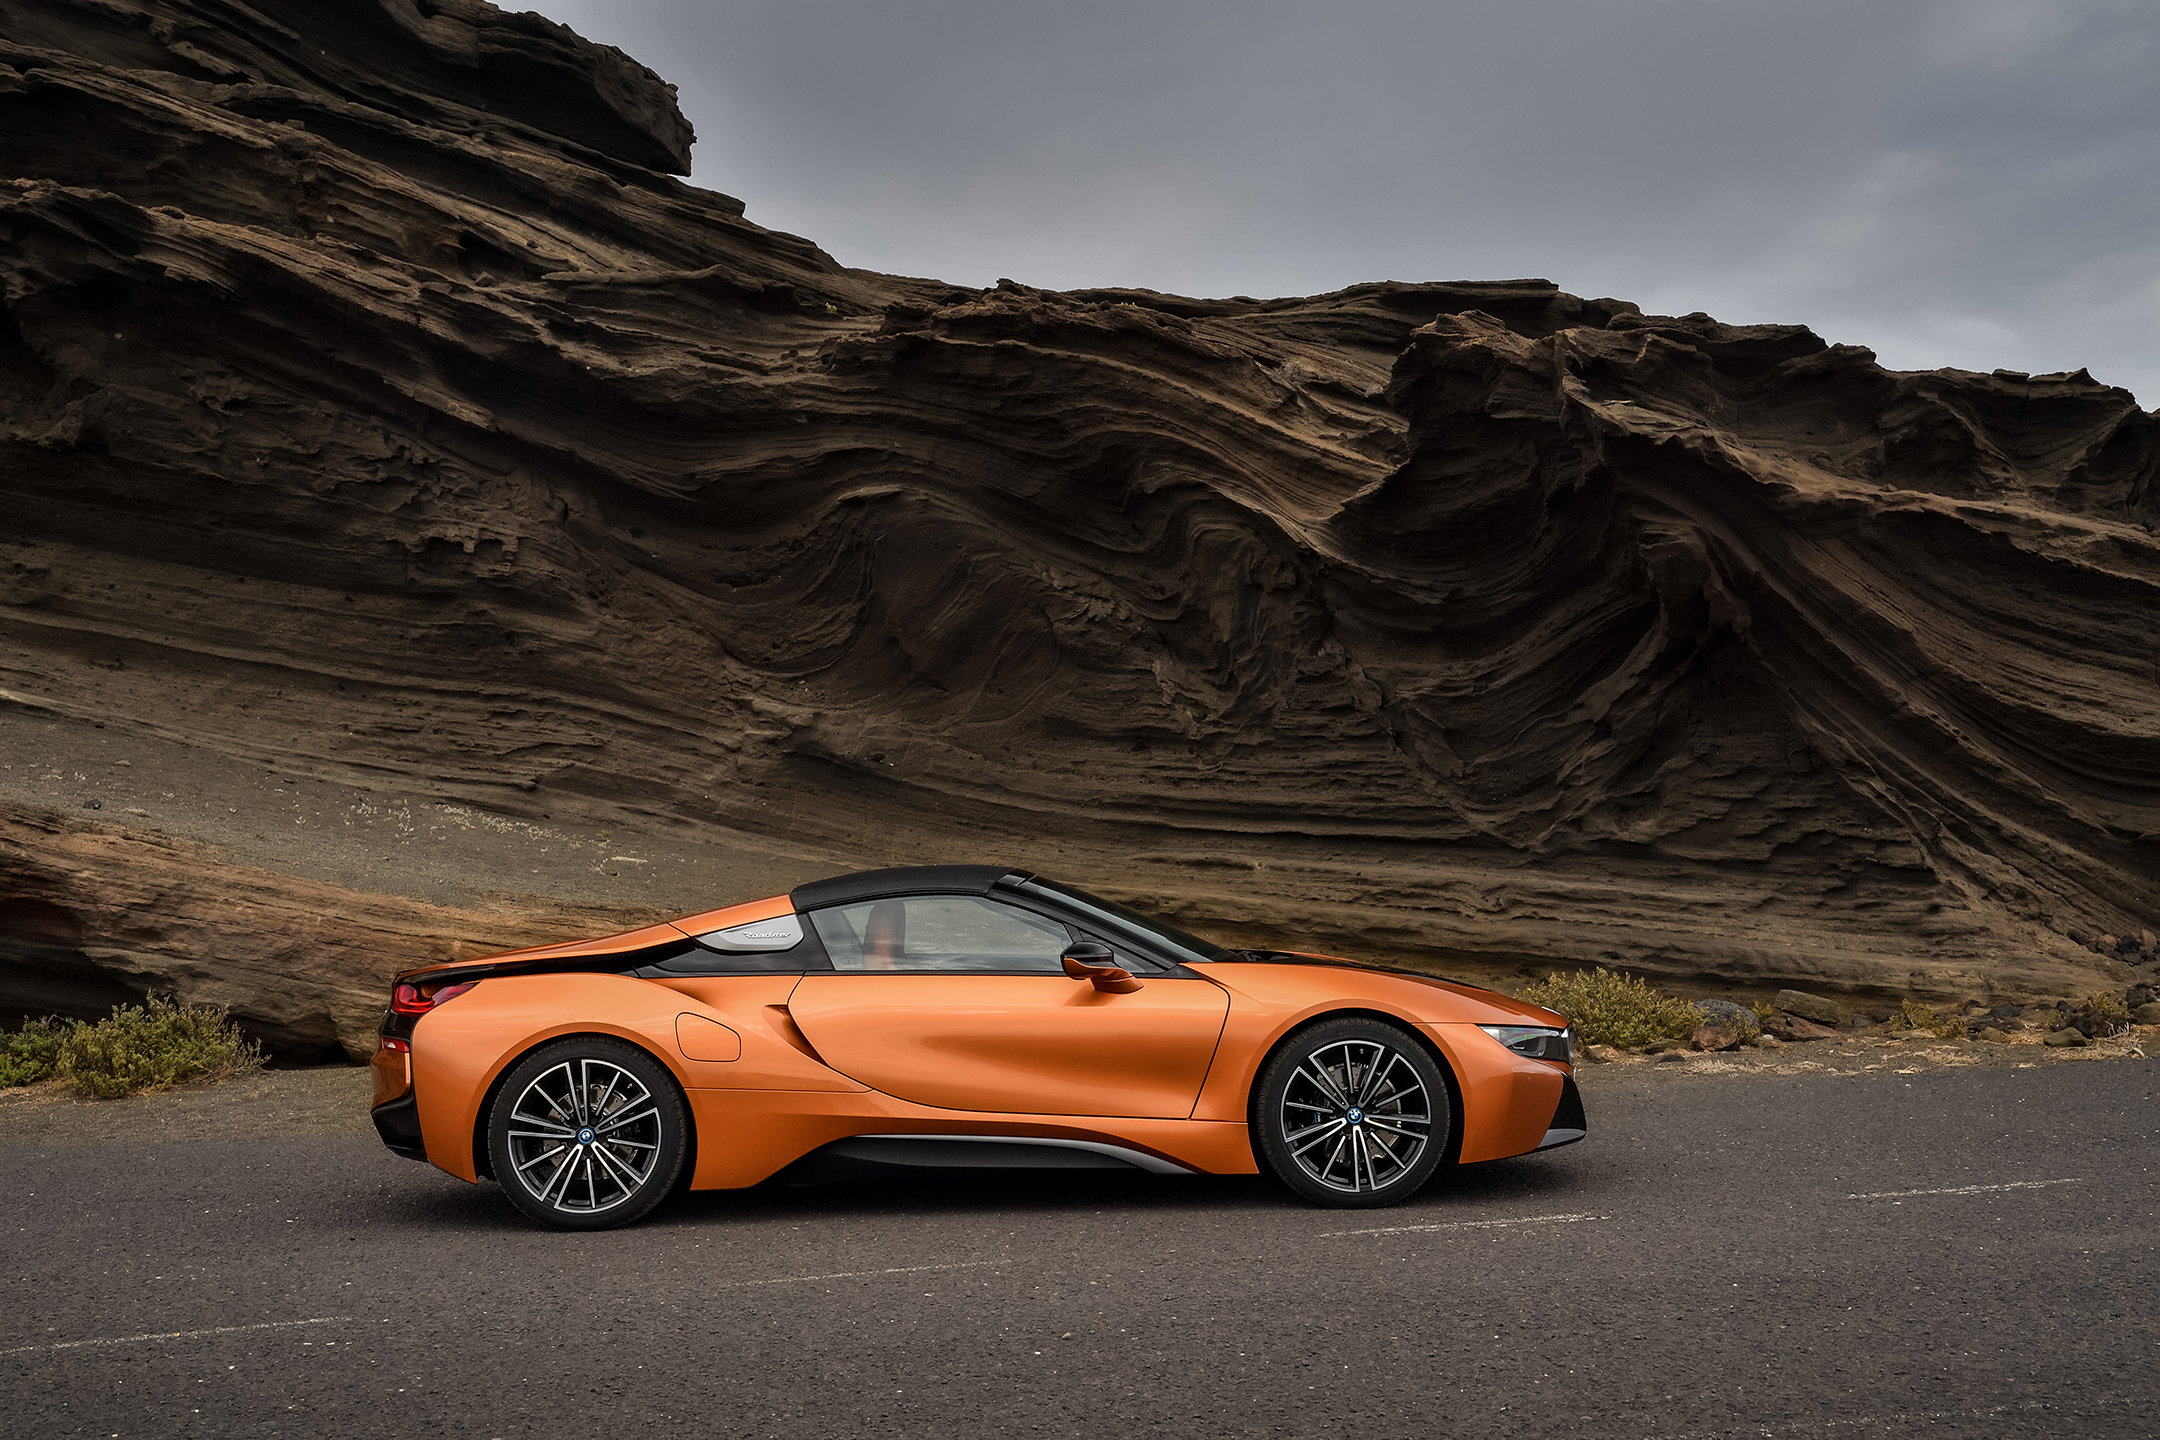 BMW i8 Roadster - 2017 - side-face / profil - wih roof / avec toit